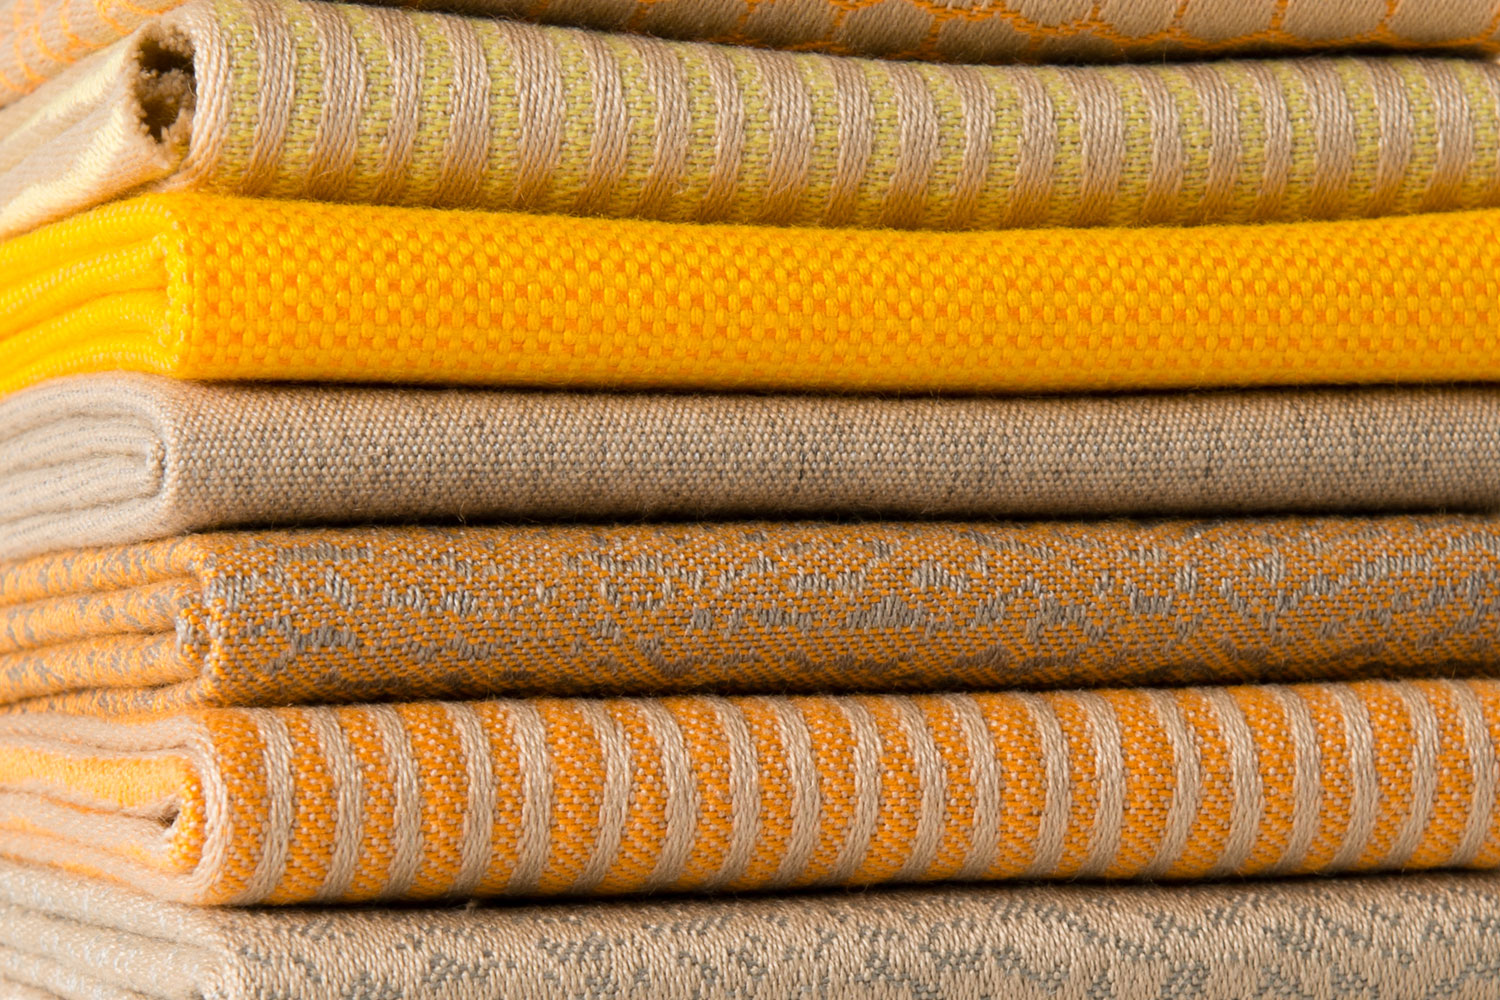 A selection of Sunbrella fabrics that illustrate the perform trend.